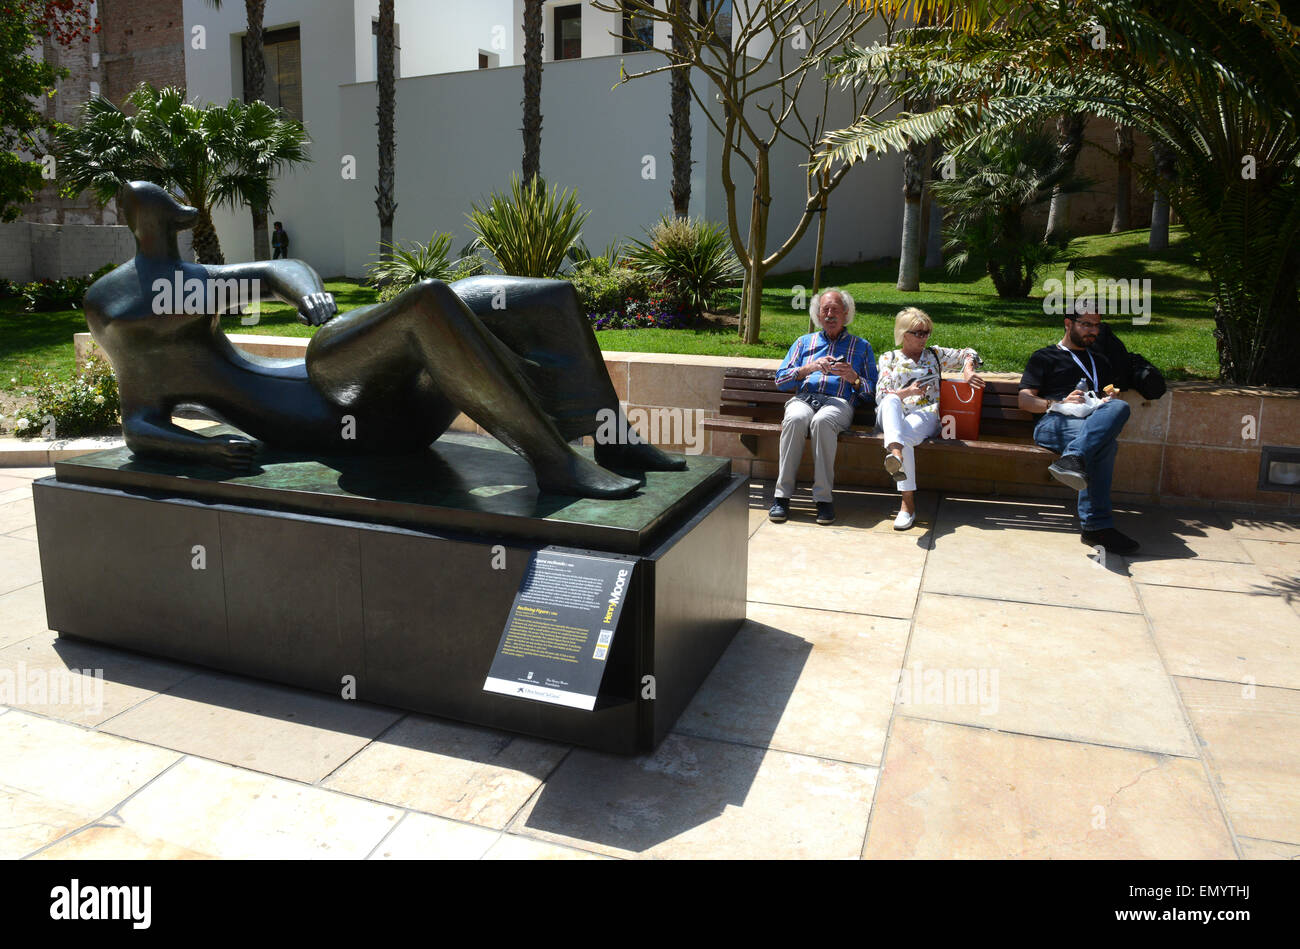 Henry Moore bronzes sculptures 'The Reclining Figure' in Malaga Spain - Stock Image